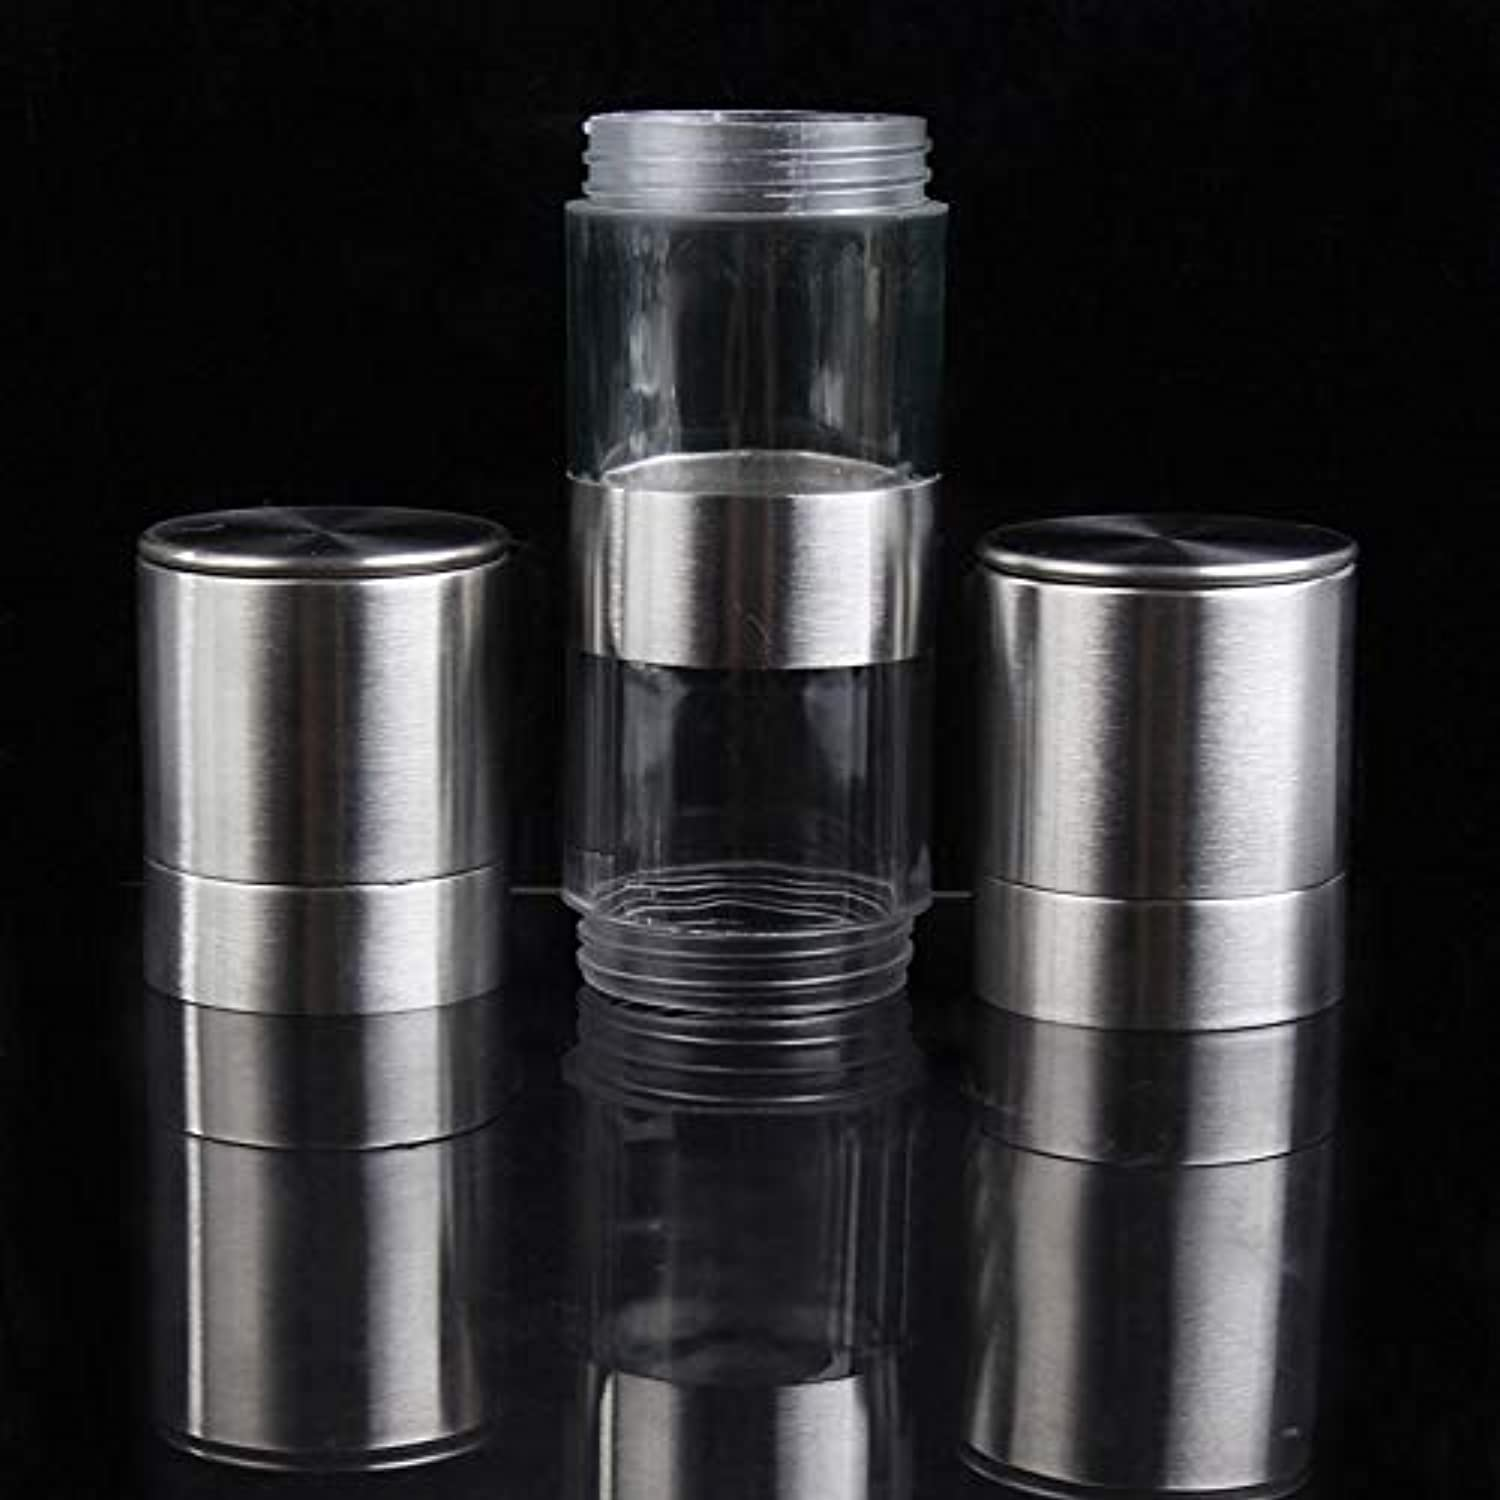 2 in 1 Manual Stainless Steel Kitchen Salt and Pepper Mill Grinder Muller BS